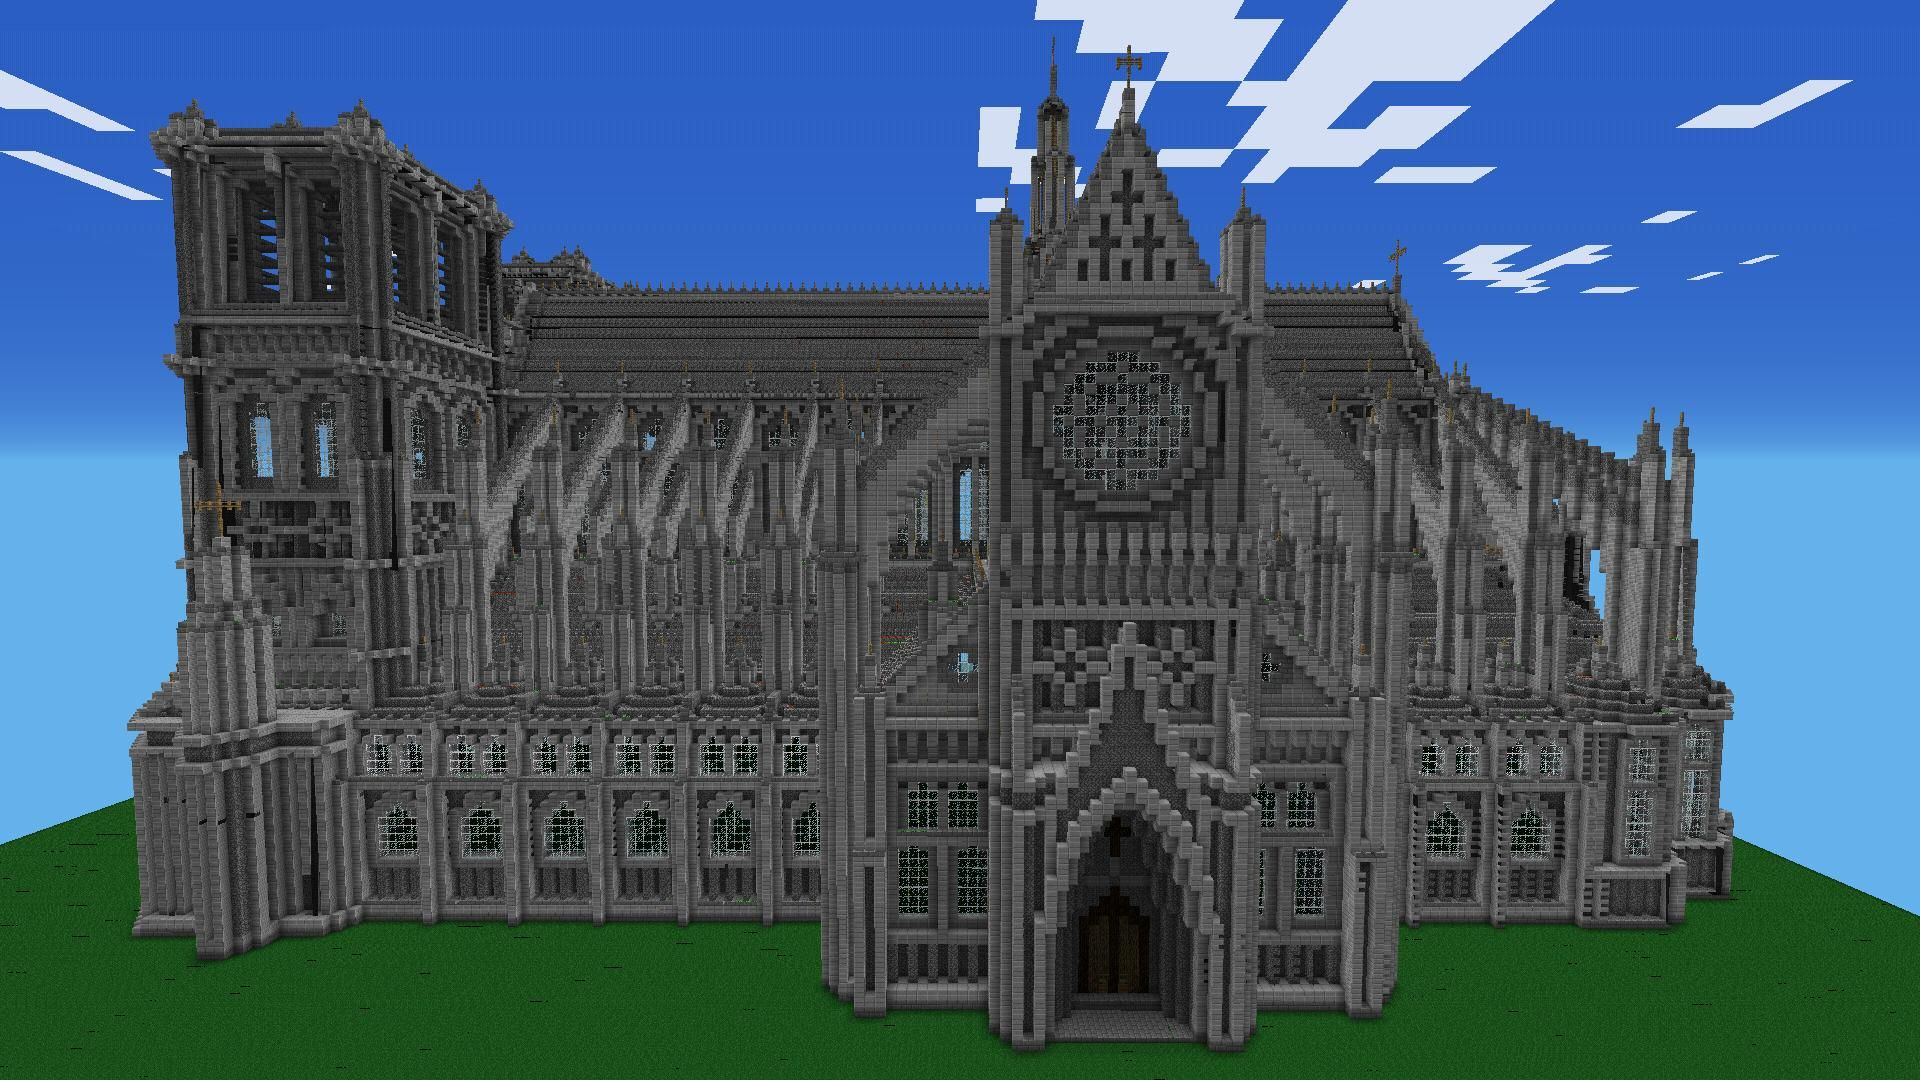 Gothic church minecraft google search minecraft pinterest minecraft a - Minecraft and architecture ...